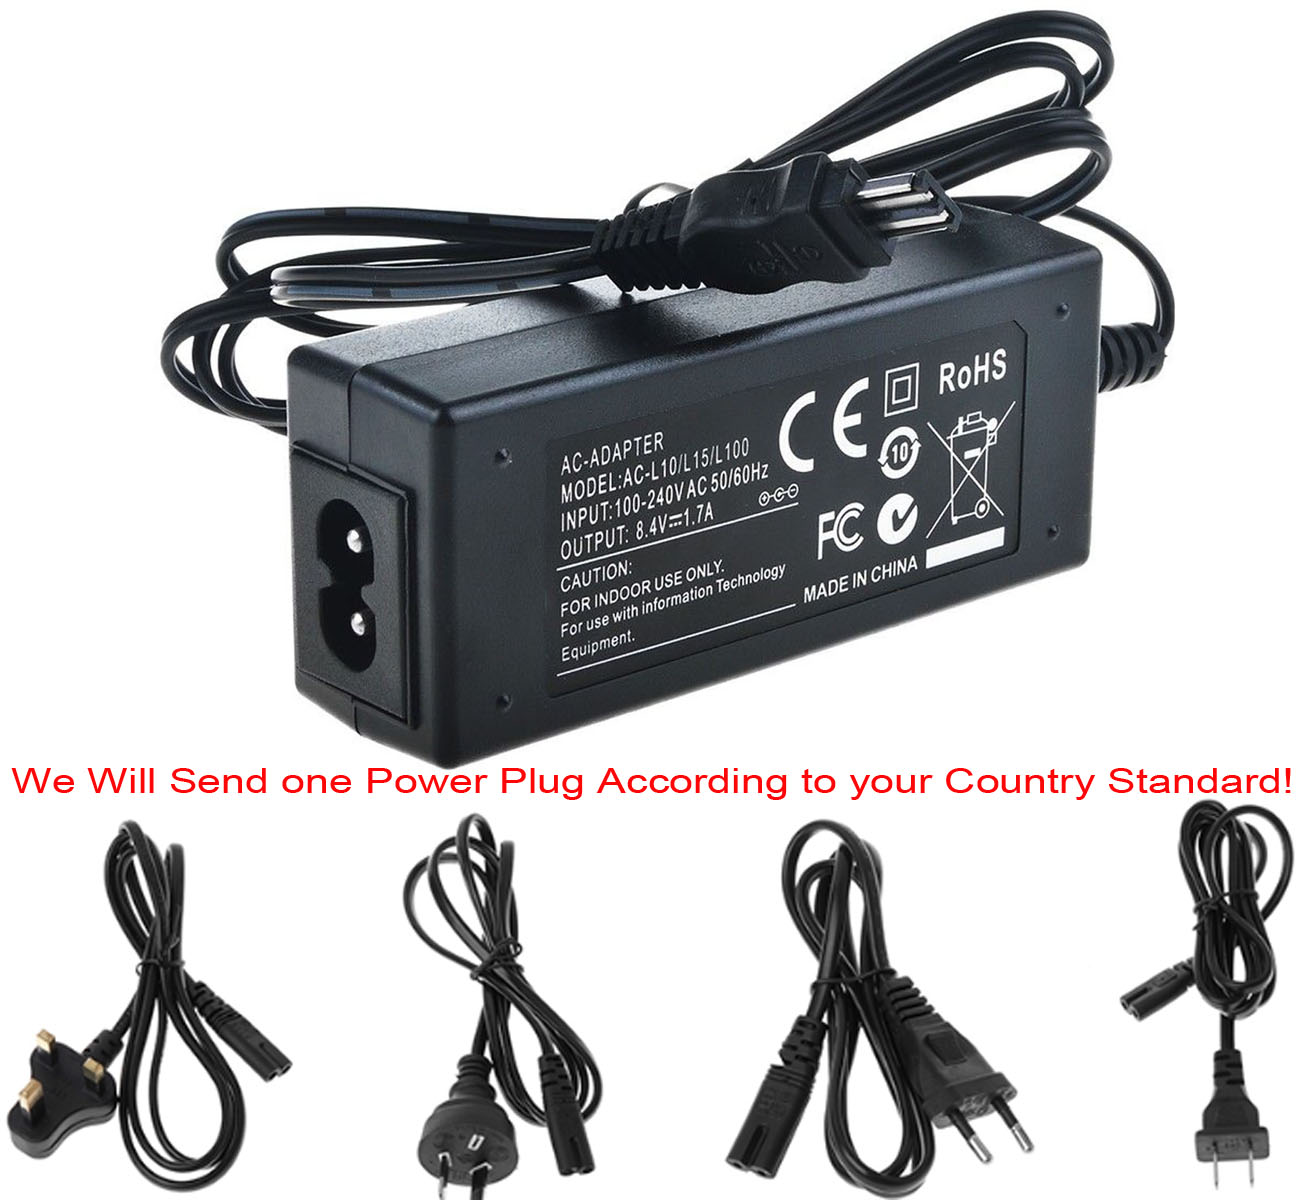 AC Power Adapter Charger for Sony CCD-TRV3E, CCD-TRV13E, CCD-TRV15E, CCD-TRV16E, CCD-TRV17E, CCD-TRV27E Handycam Camcorder